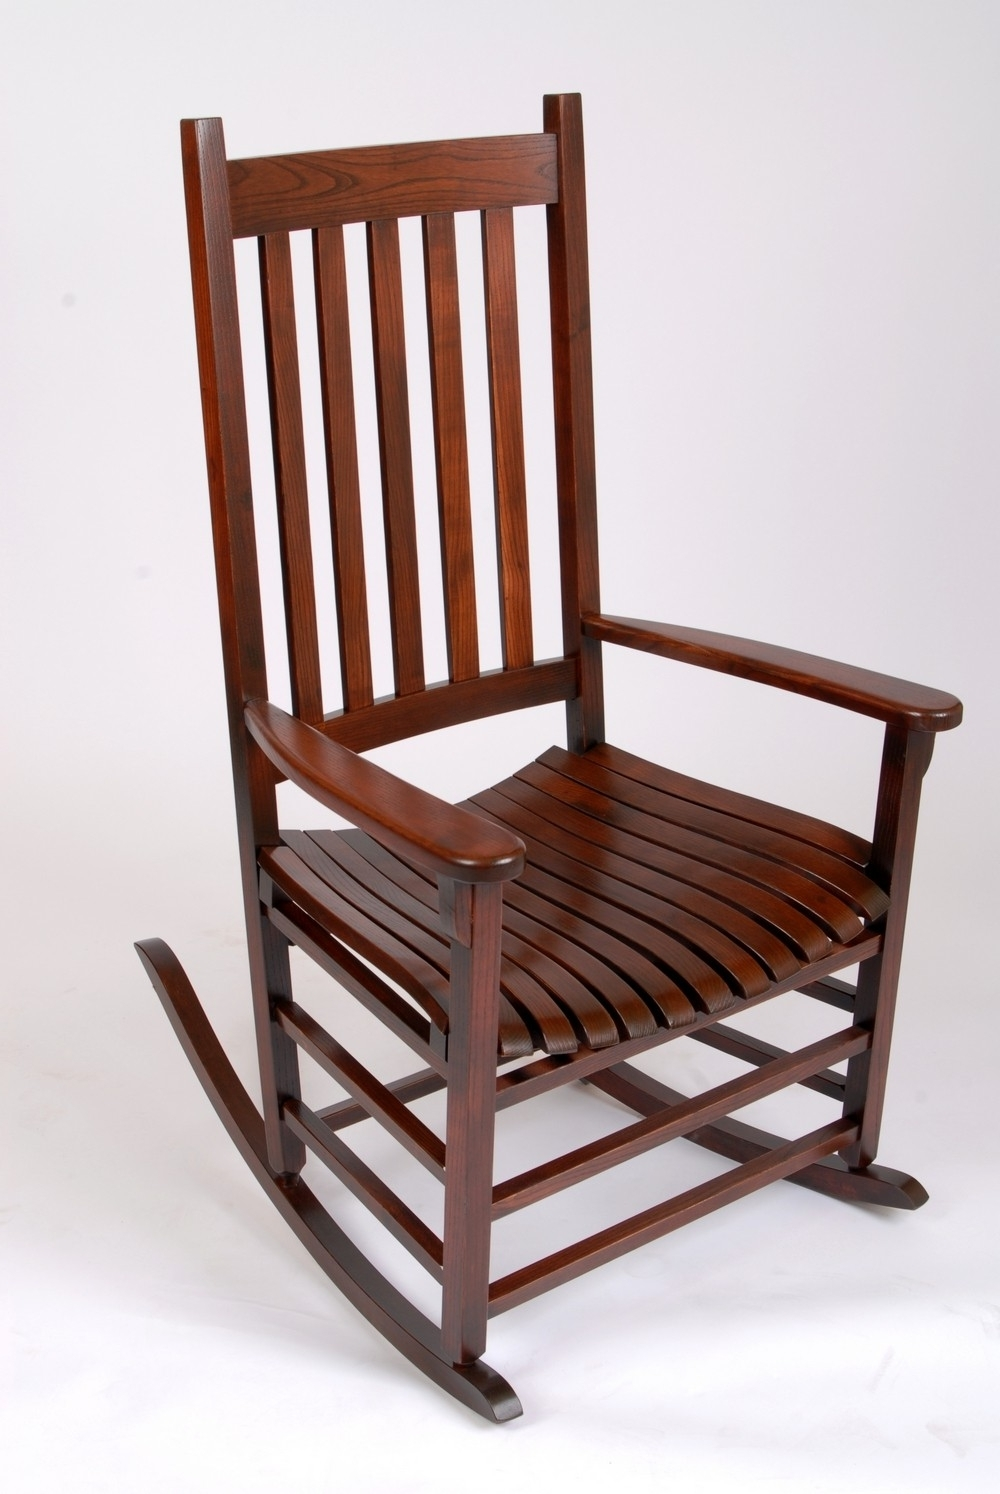 Sensational Inspiration Ideas Old Style Wooden Rocking Chair 68 Throughout Most Popular Old Fashioned Rocking Chairs (View 10 of 20)